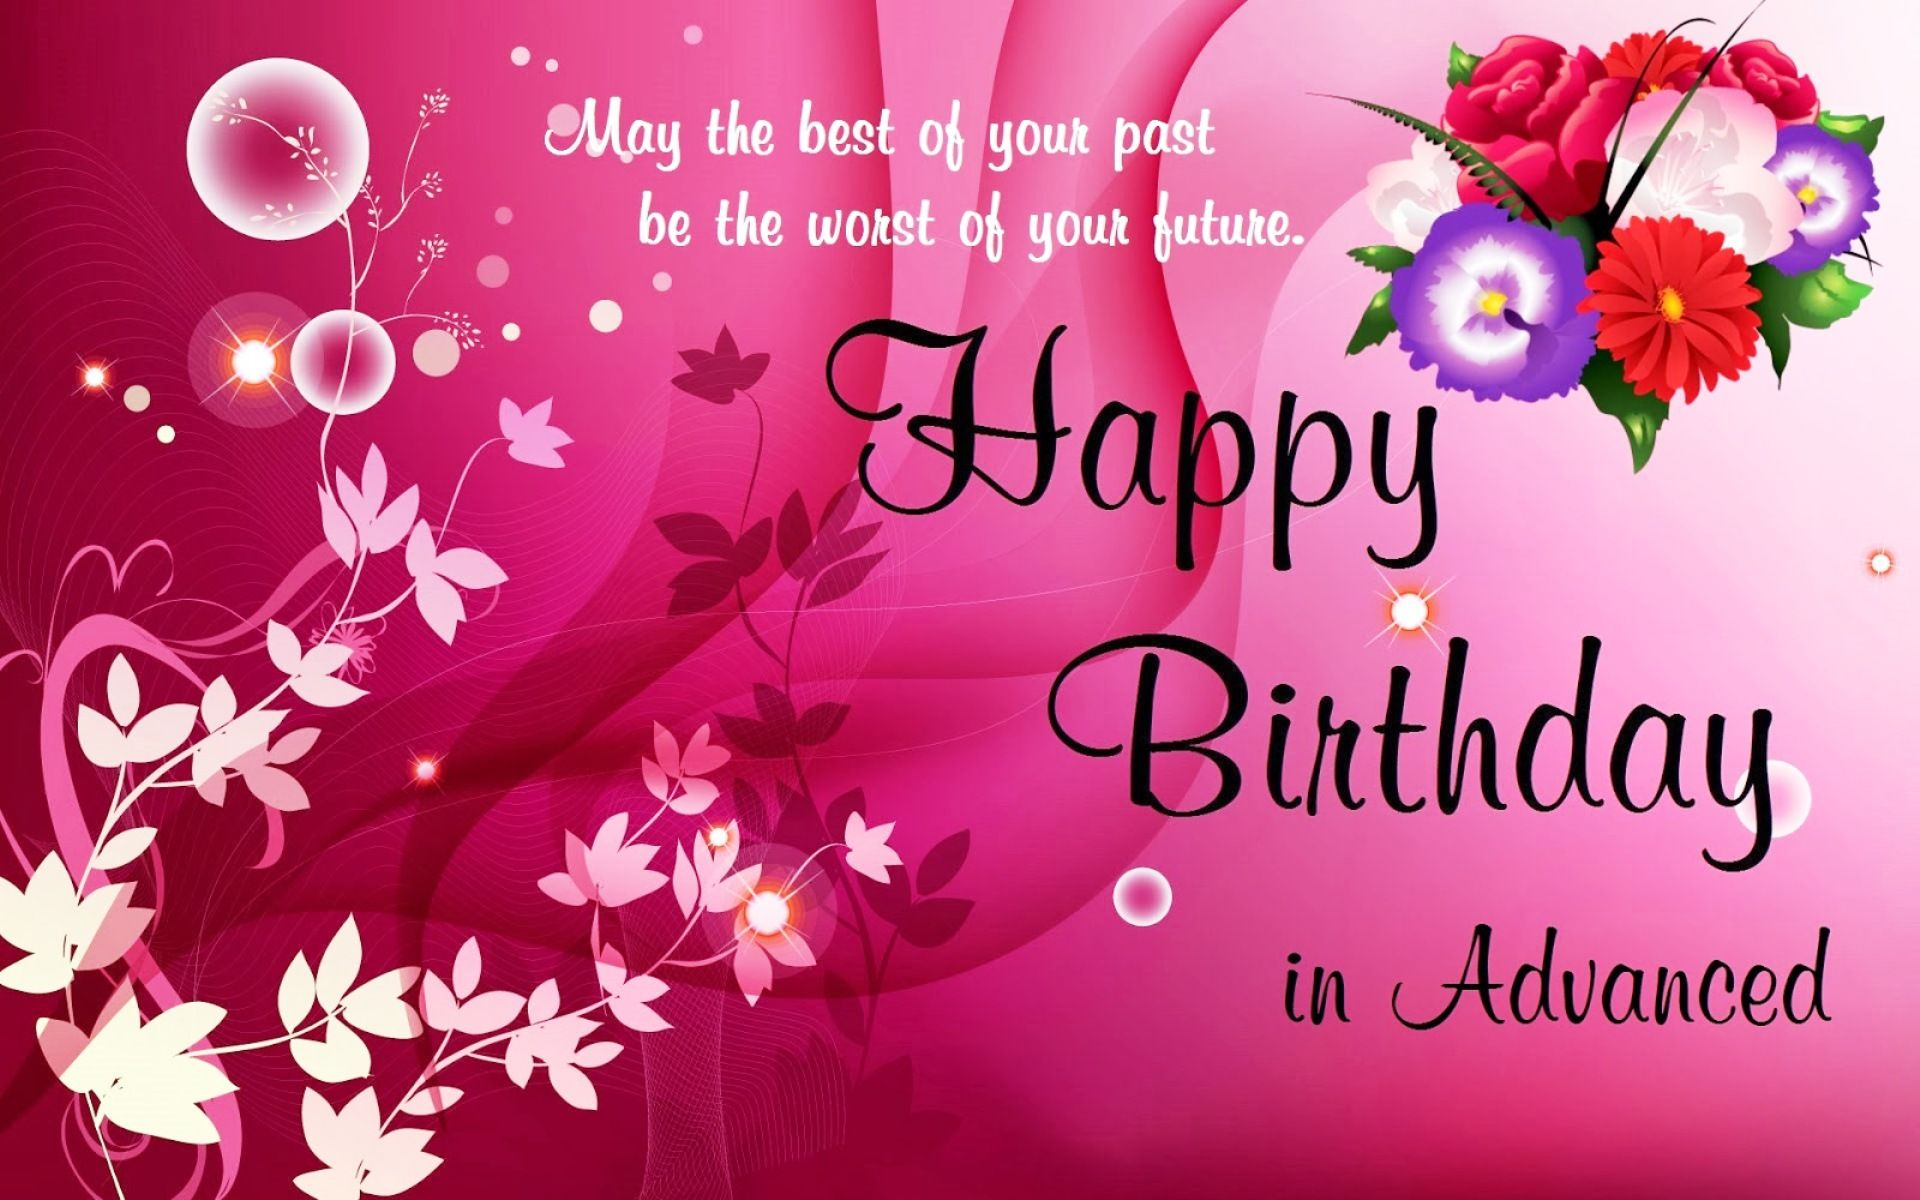 Free Birthday Quotes And Images ~ Happy birthday images free download with wishes happy birthday